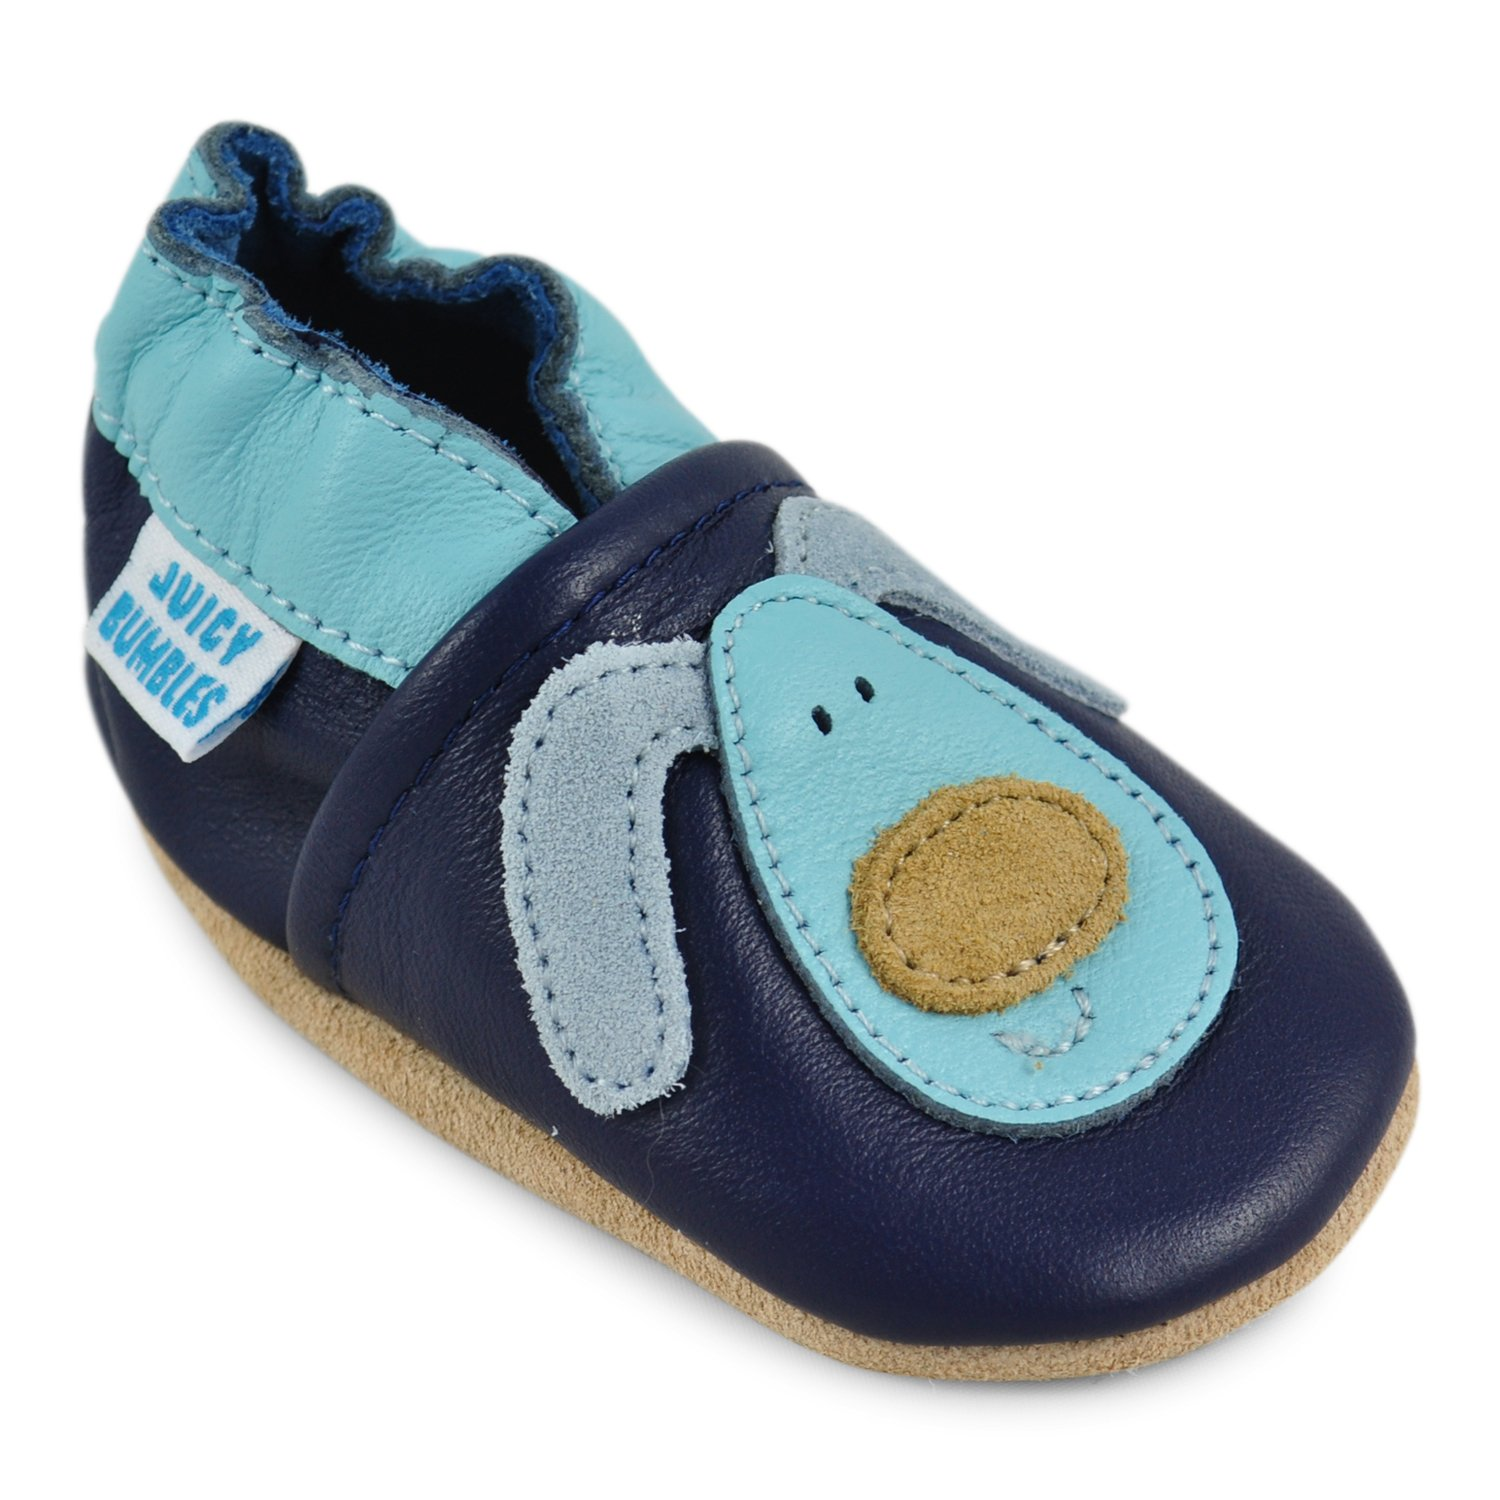 Soft Leather Baby Boy Shoes - Baby Shoes with Suede Soles - Dog 12-18 Months